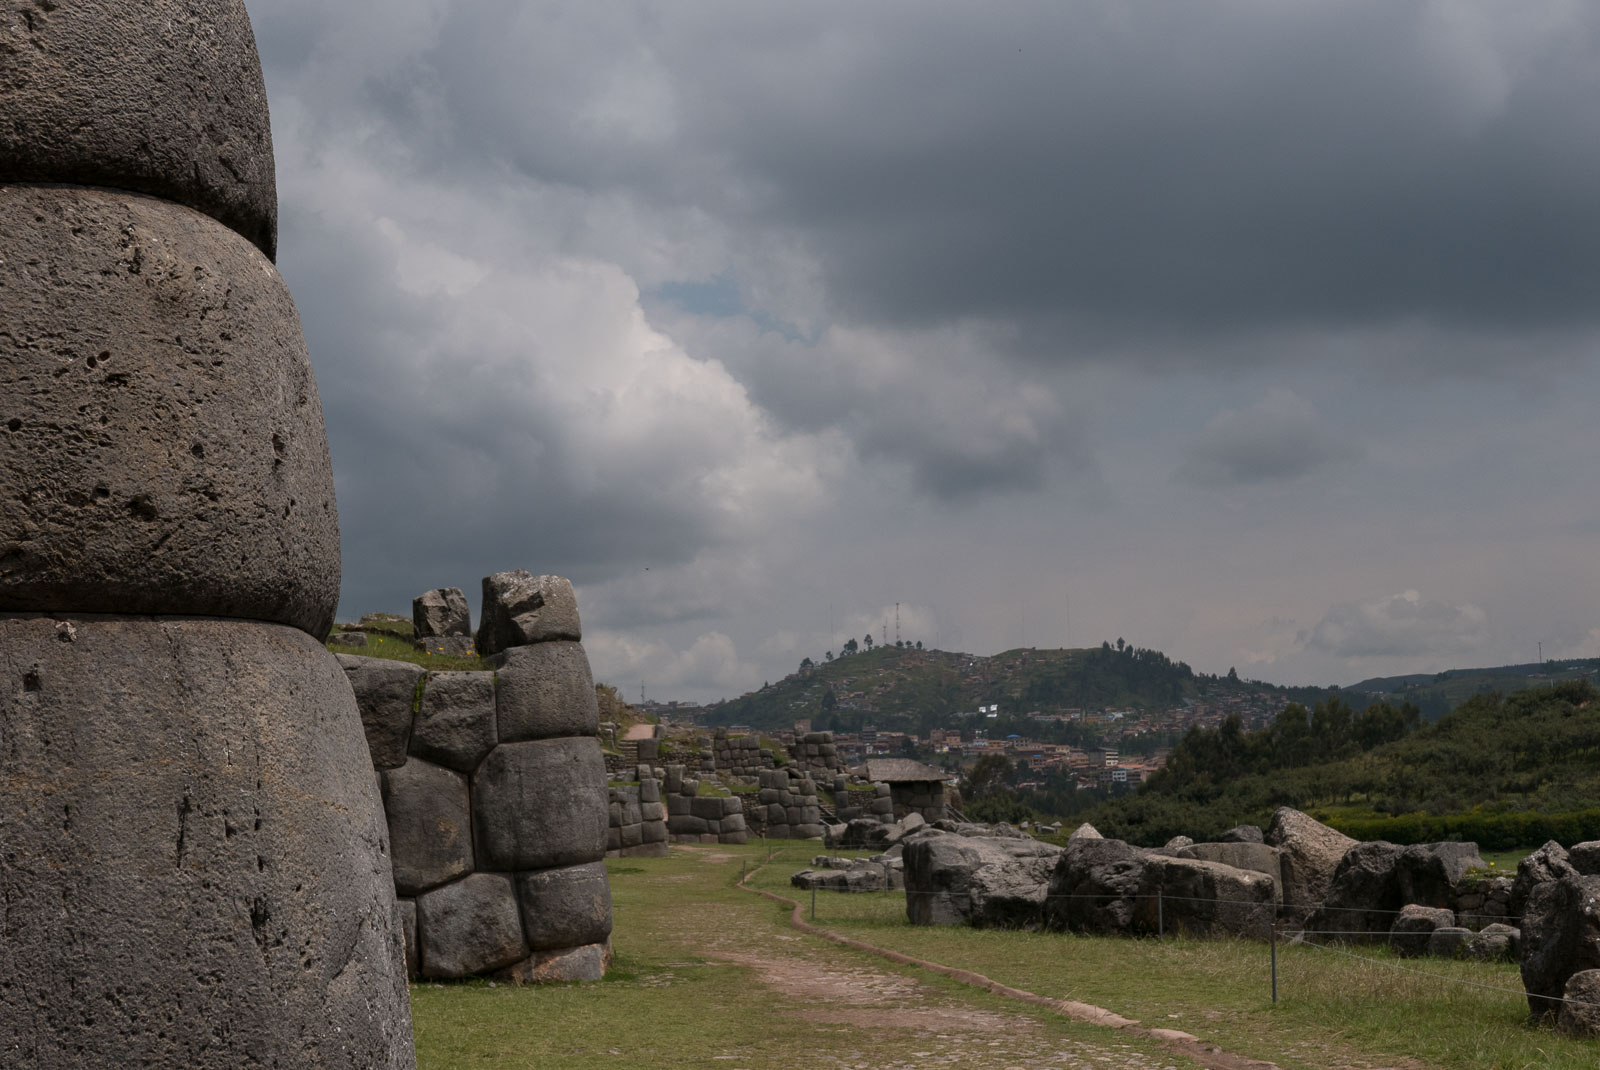 The imposing citadel rock walls at Sacsayhuaman, built around 1100, under a dark foreboding sky.